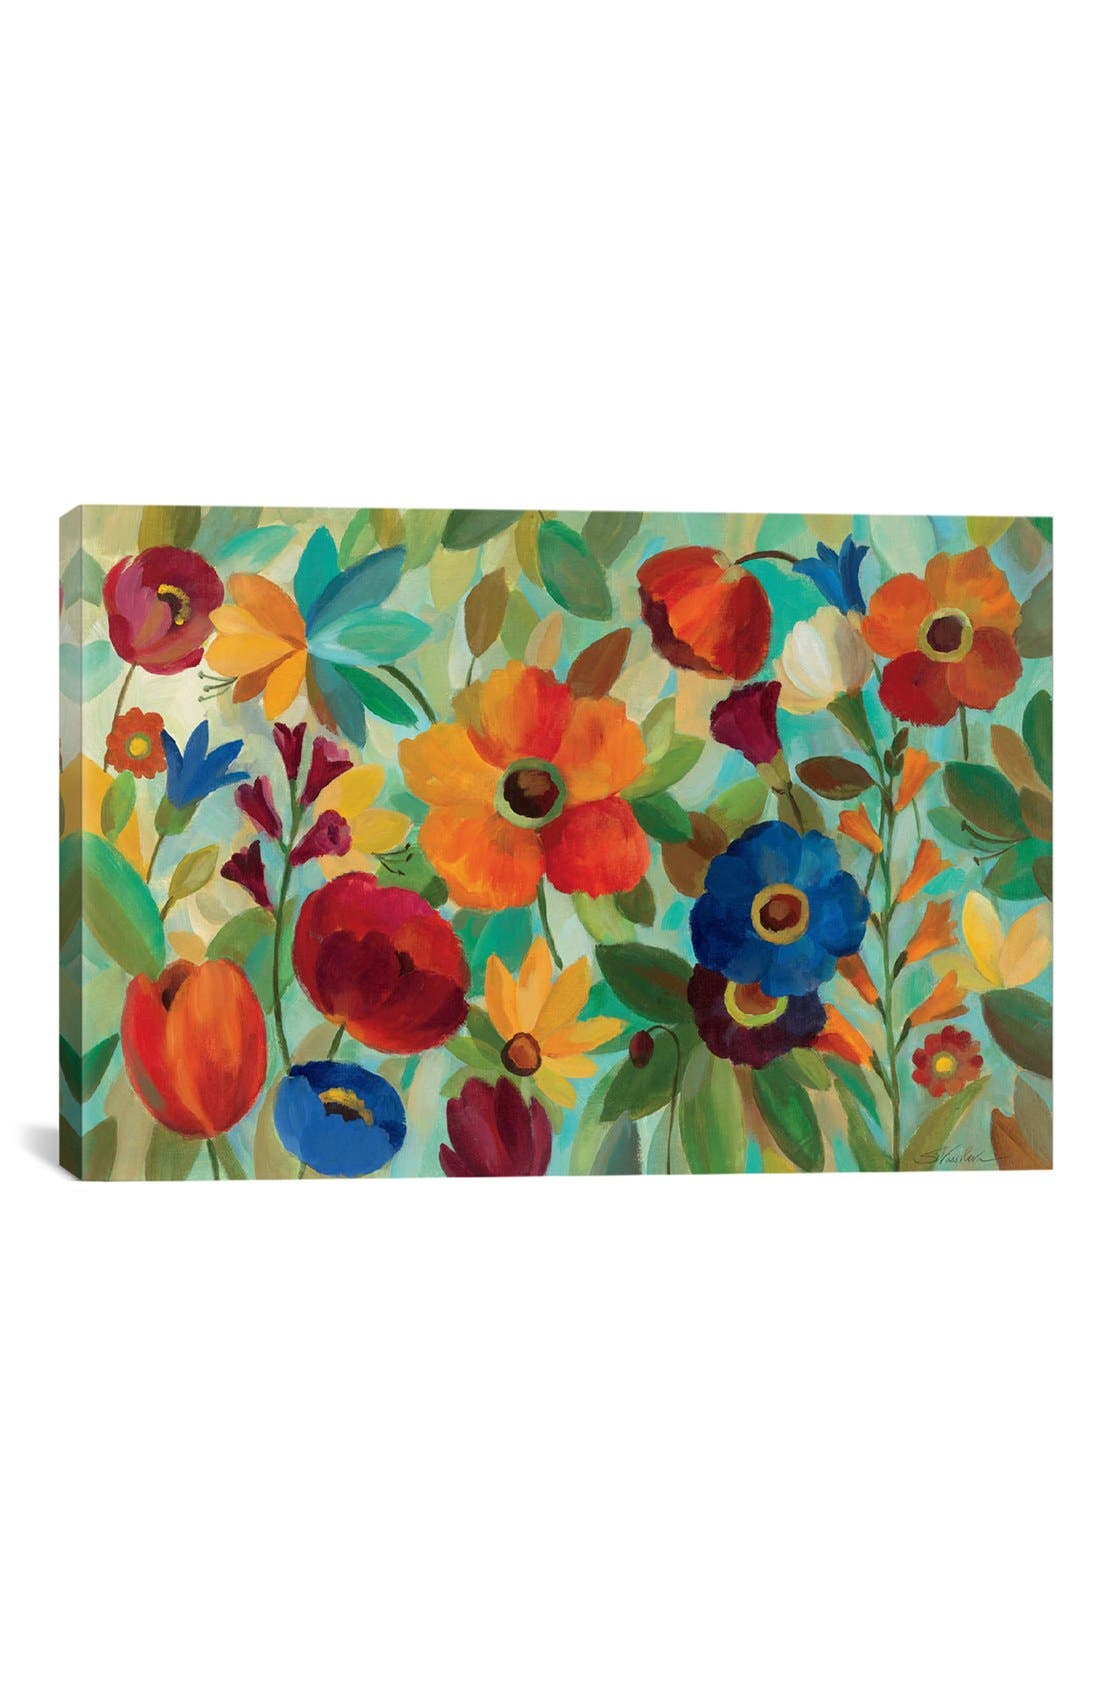 Alternate Image 1 Selected - iCanvas 'Summer Floral' Giclée Print Canvas Art